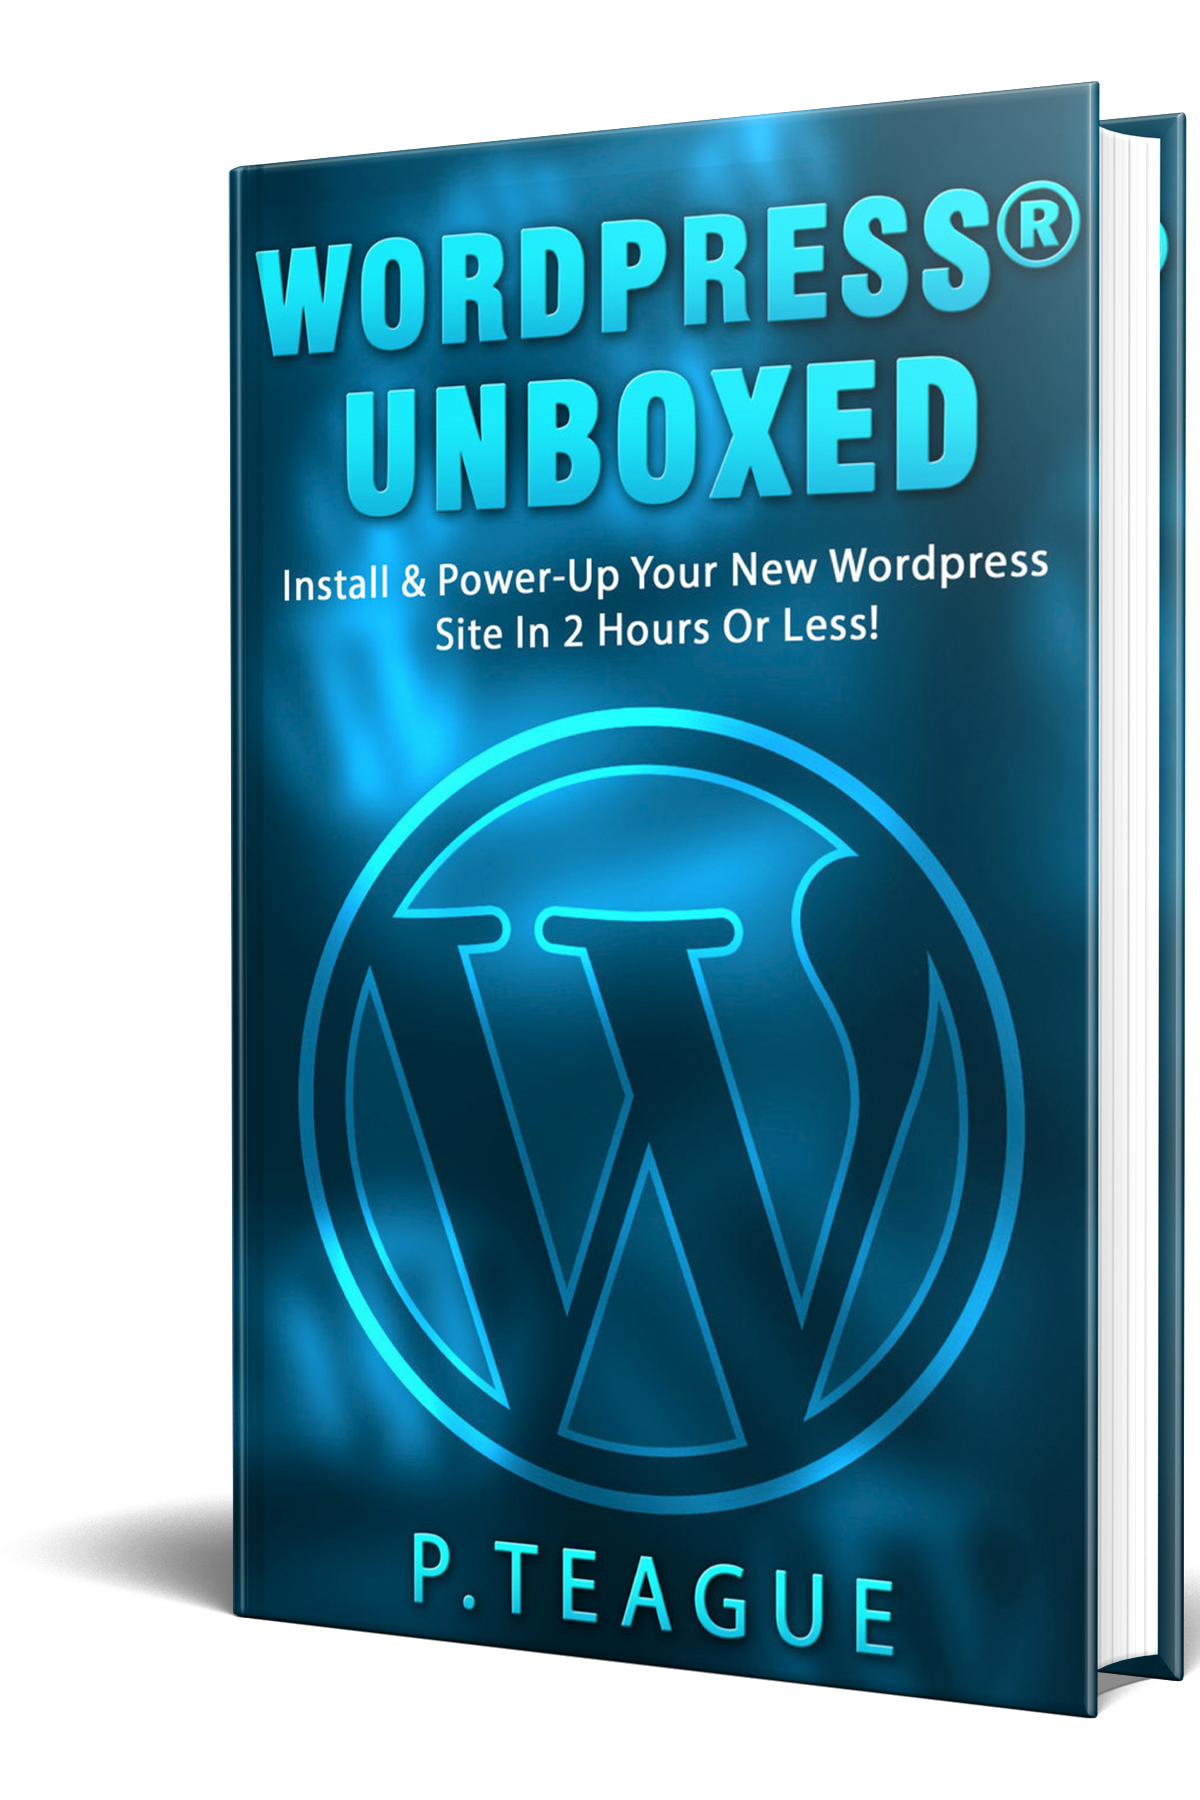 Wordpress Unboxed